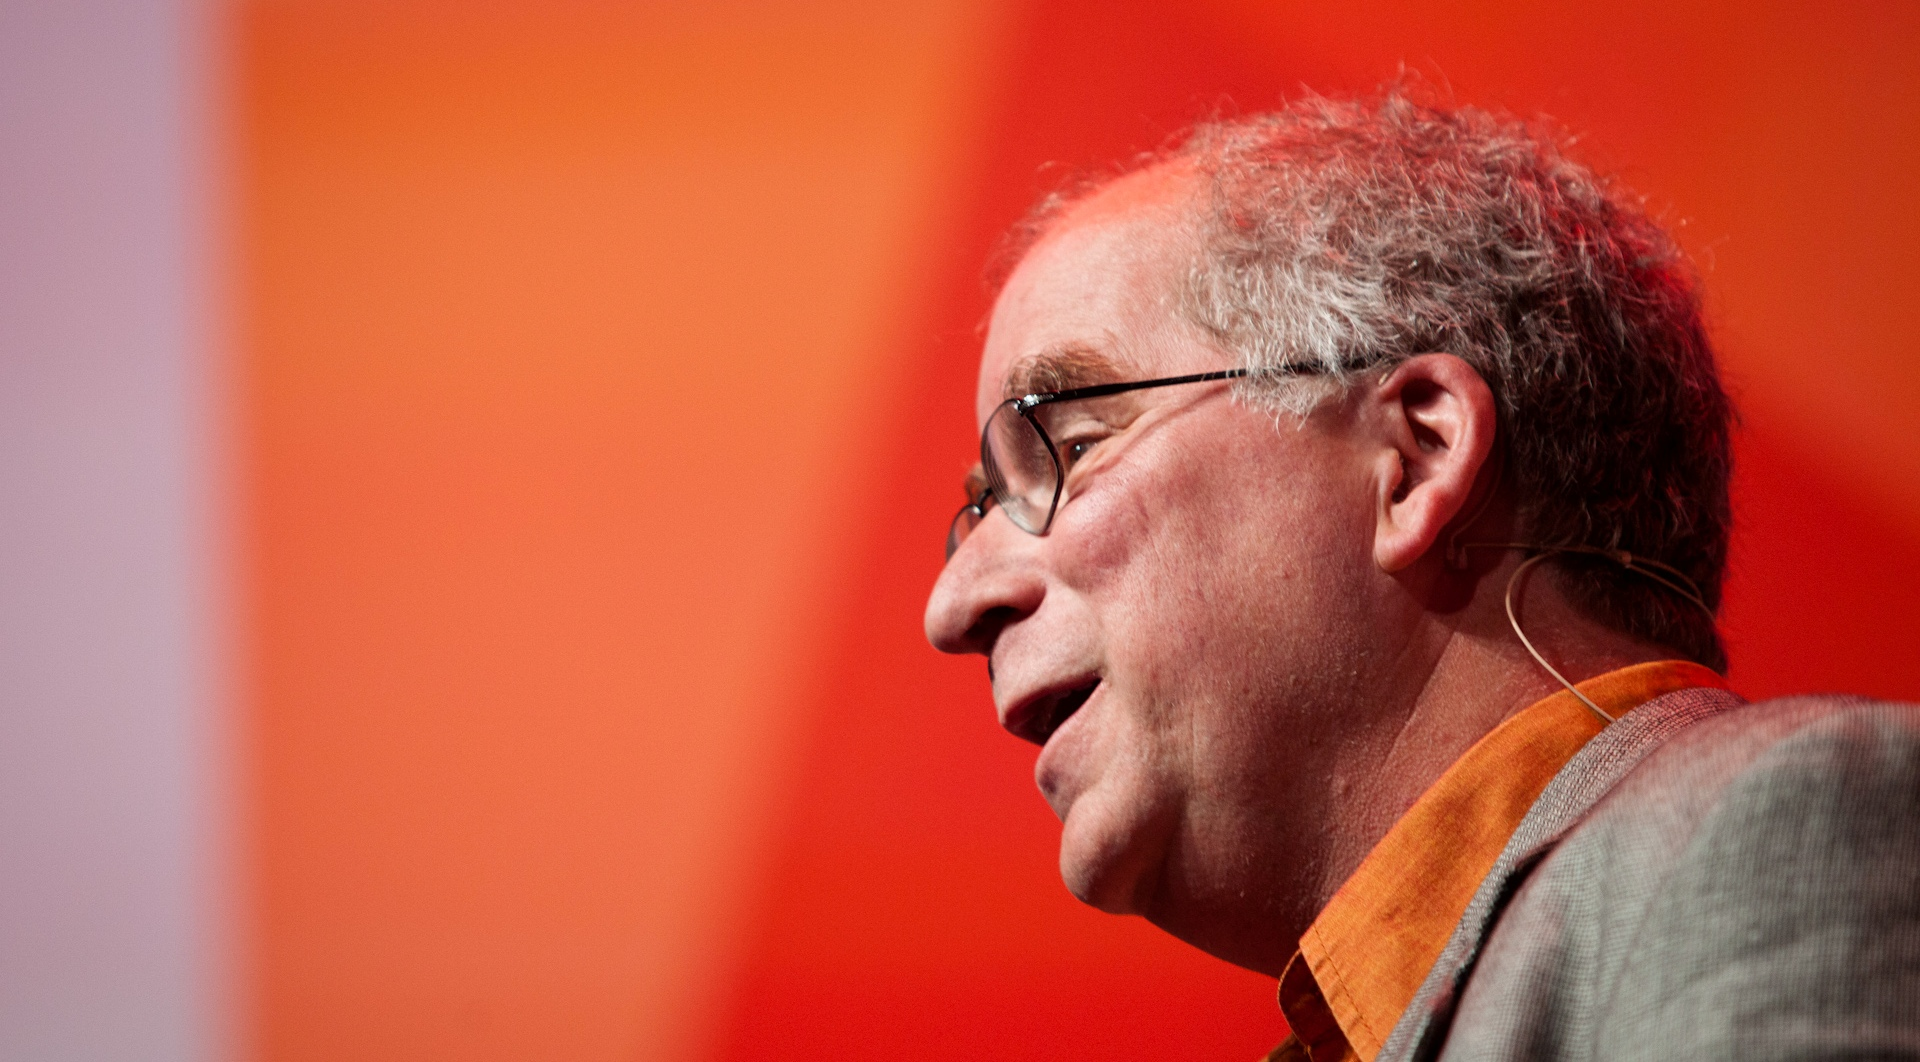 Brewster Kahle, Bitcoin & Building Affordable Housing